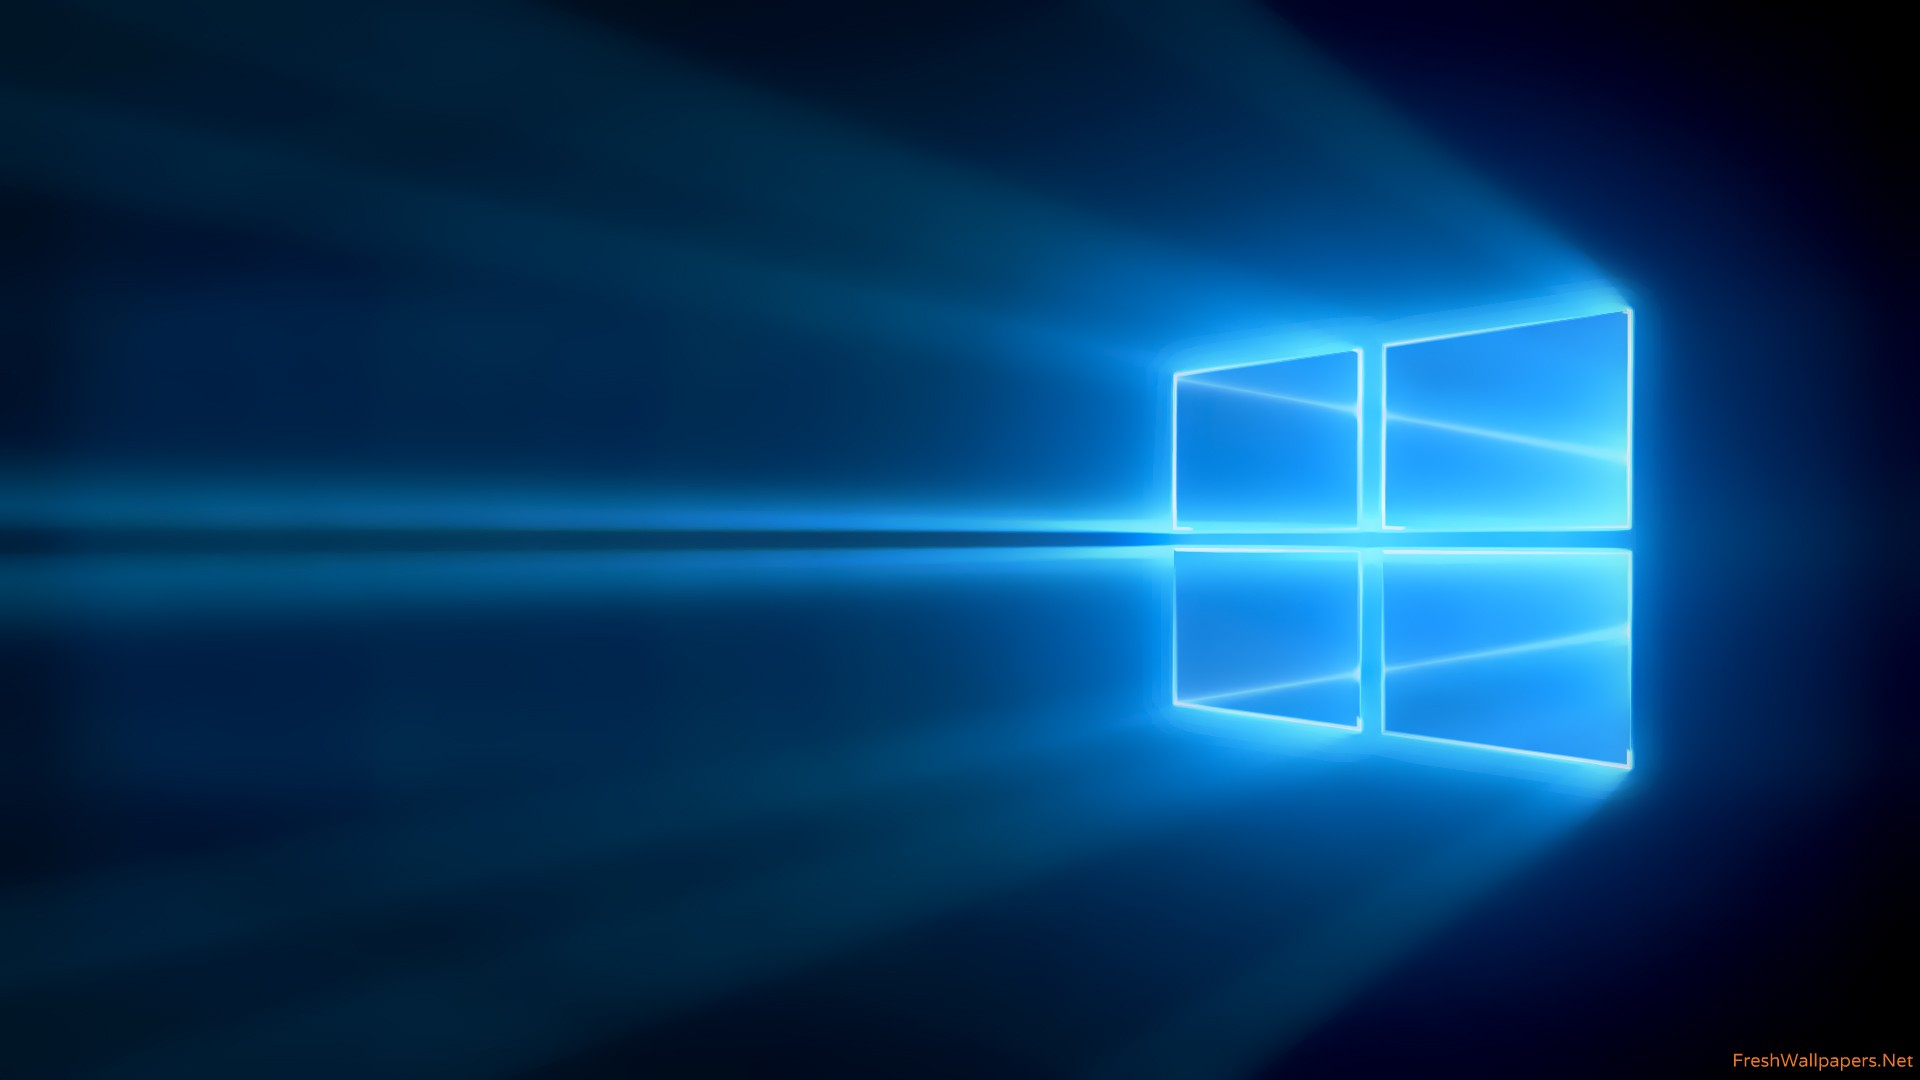 Windows 10 Official Desktop Background 1080p